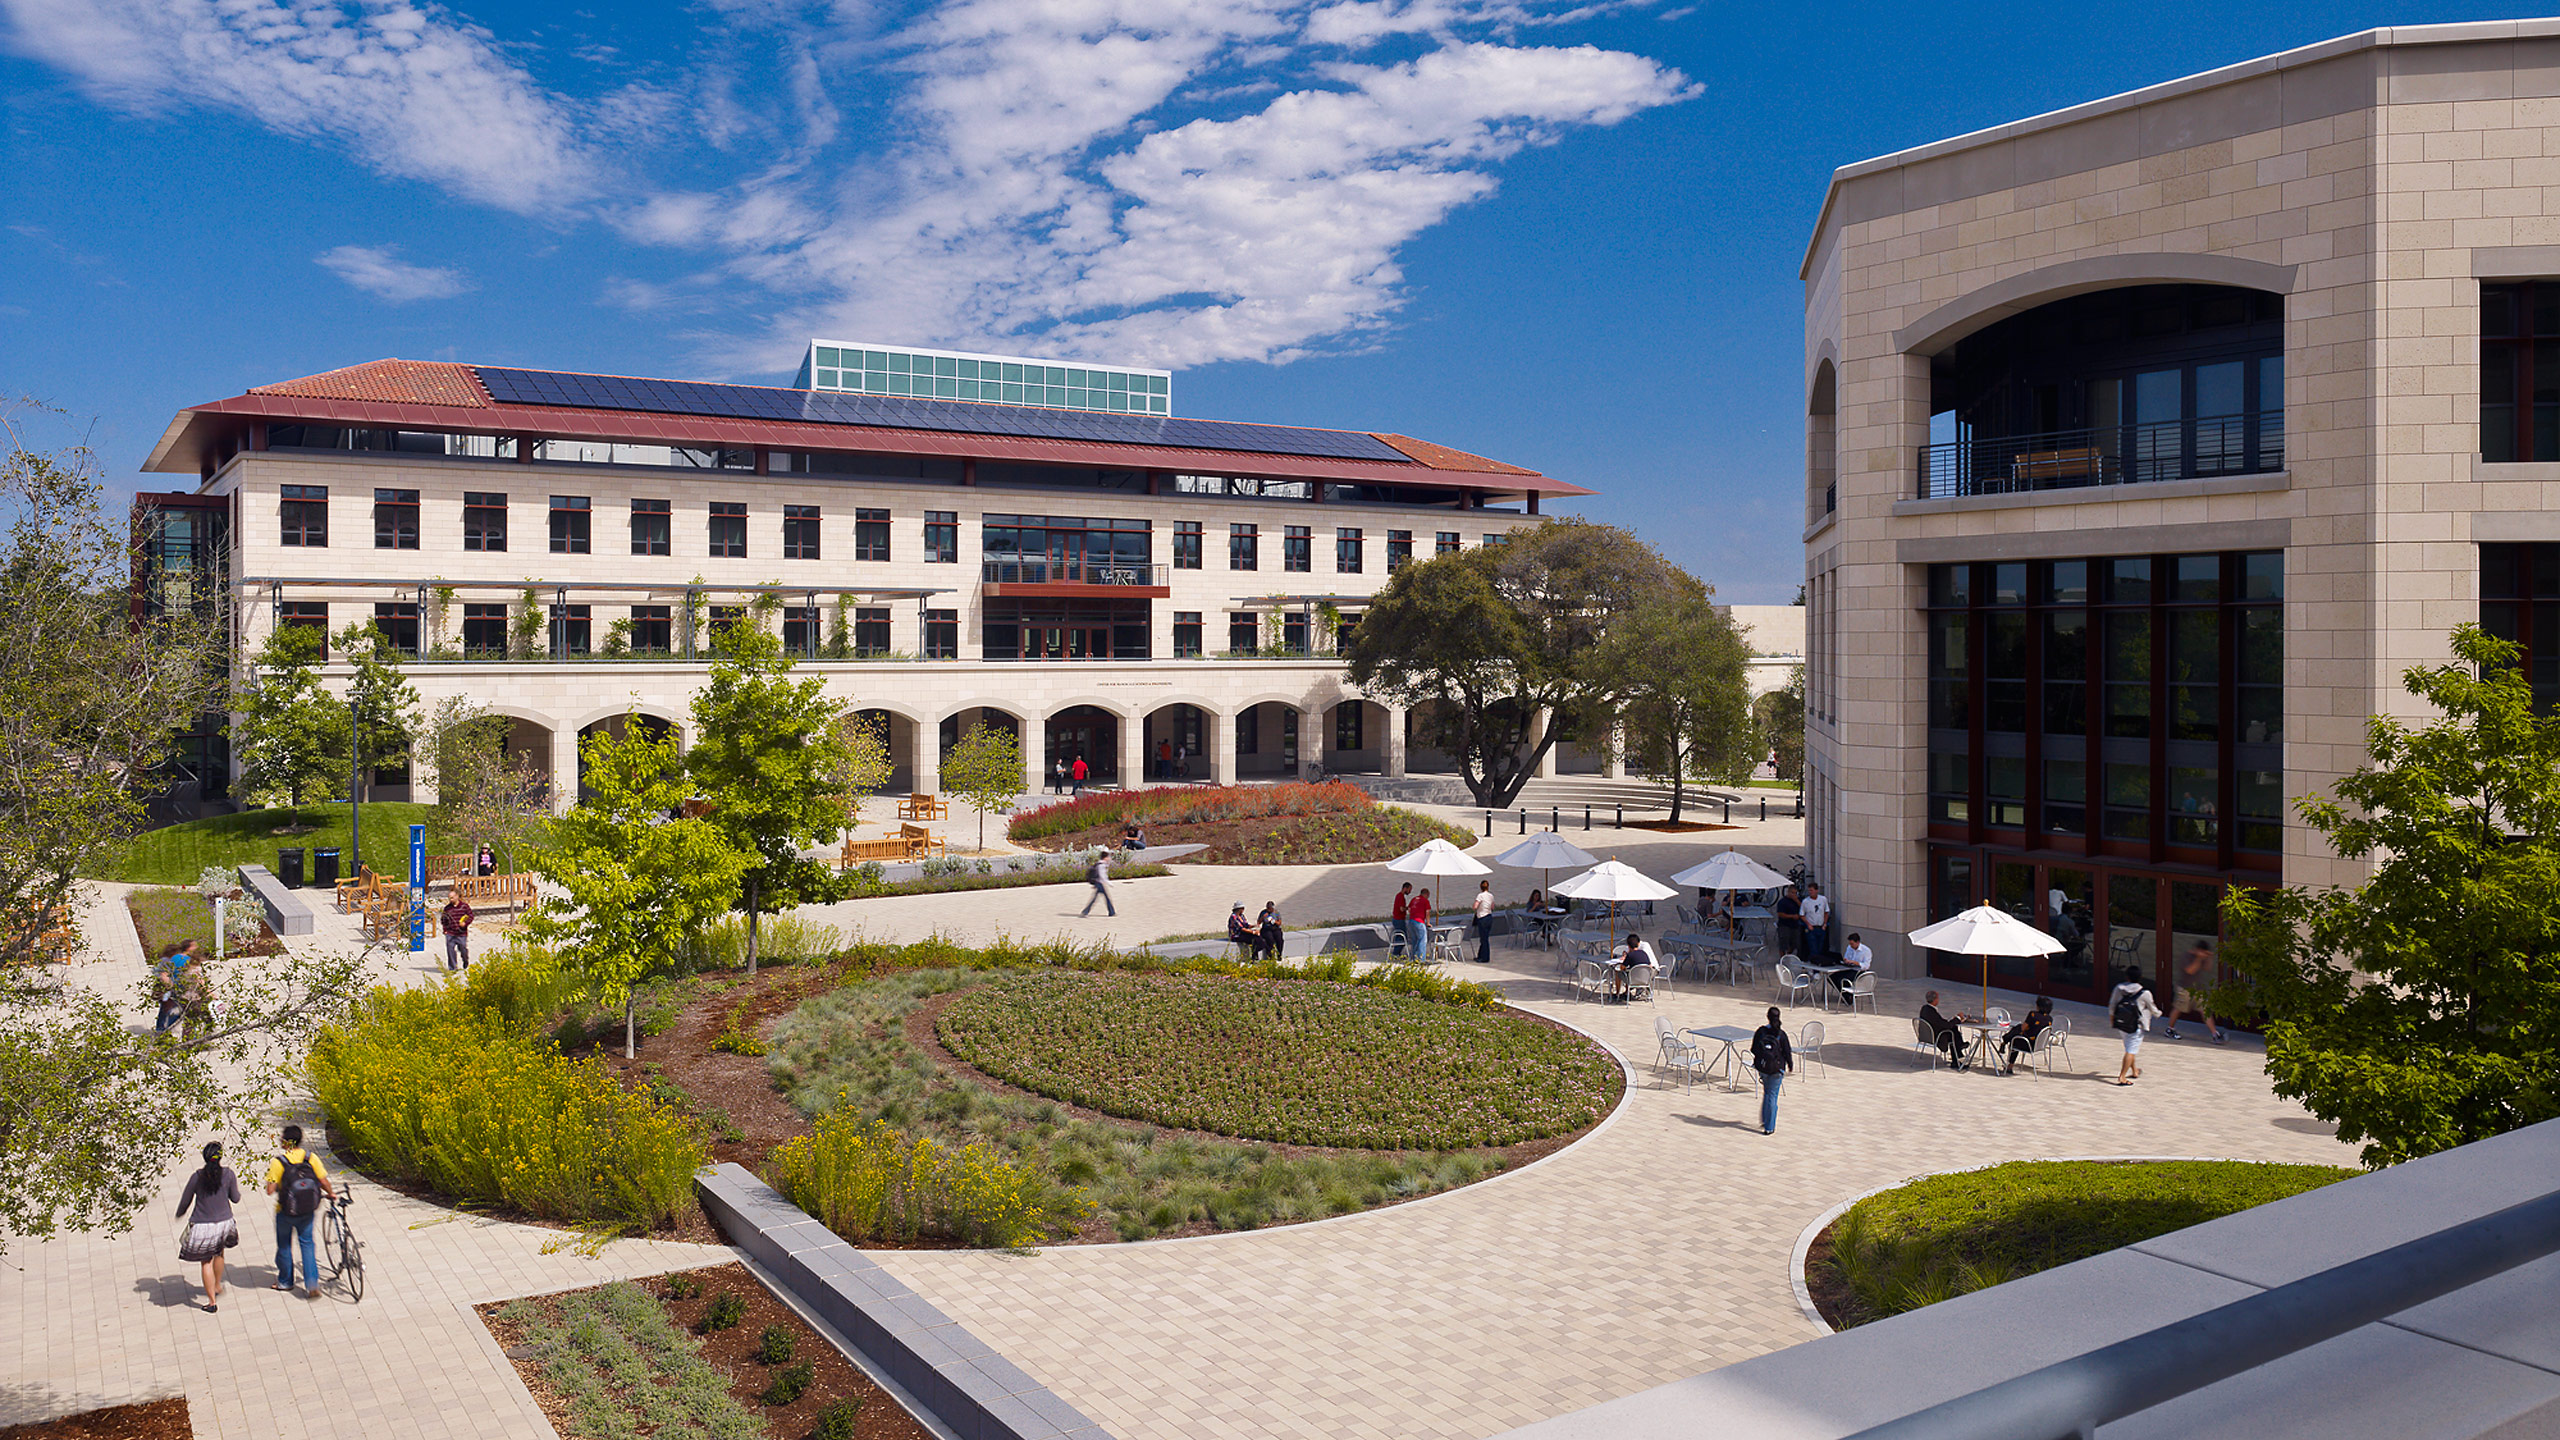 Jen-Hsun Huang Engineering Center – Stanford University / image 3